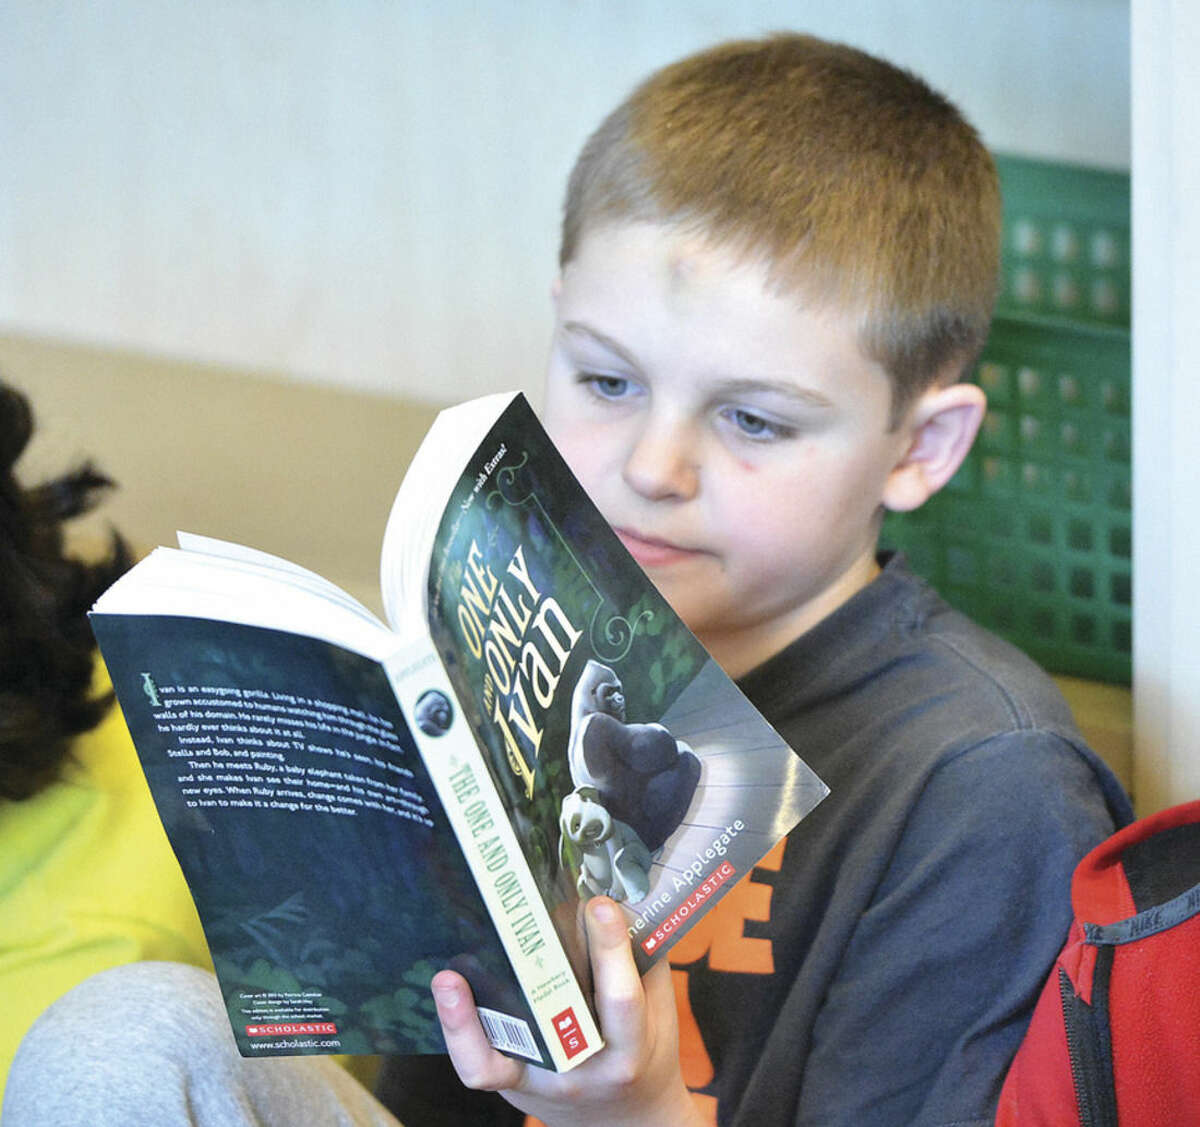 Hour Photo/Alex von Kleydorff Andrew Mcnamara reads along in class as all the students will read The One and only Ivan part of the reading program One book for Brookside.